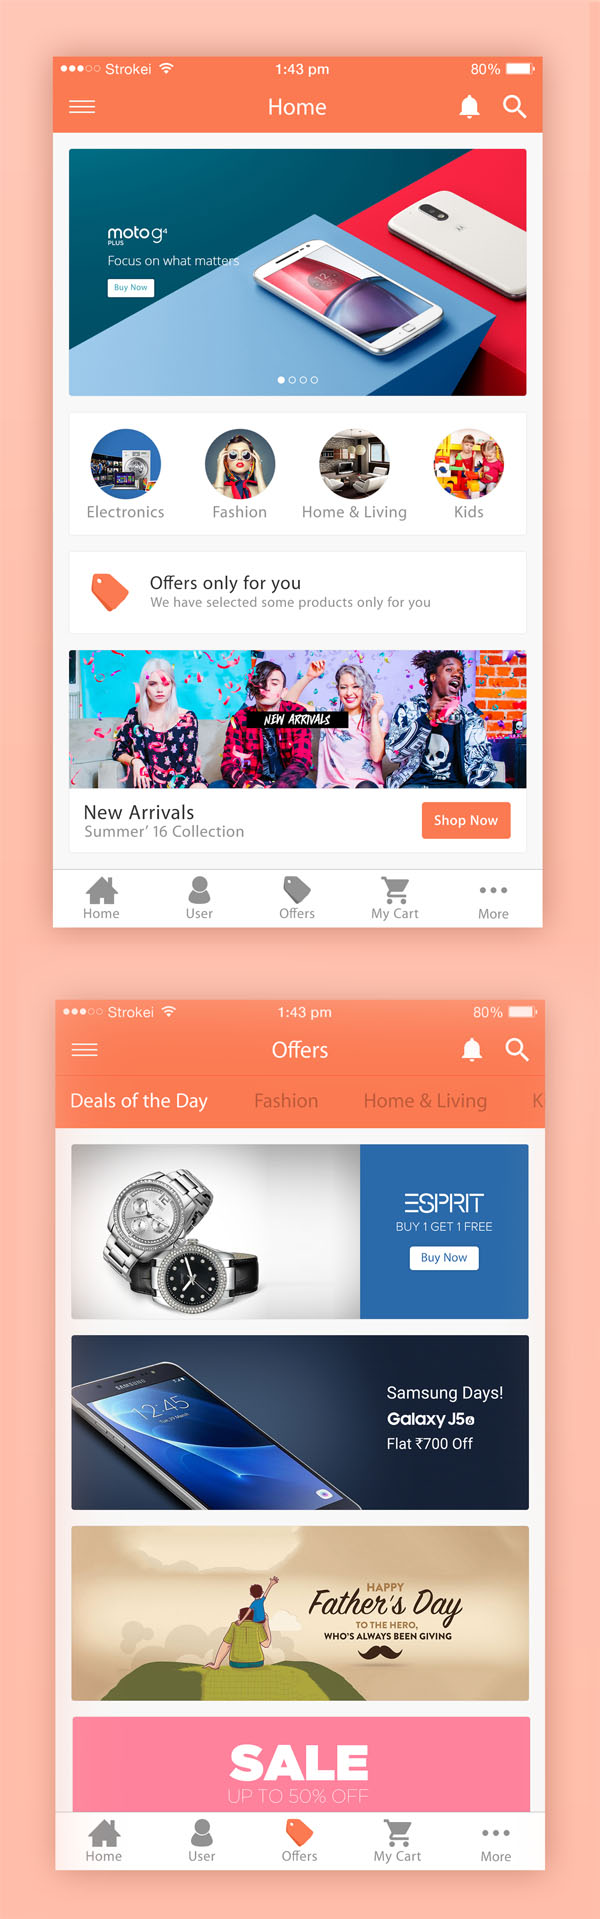 Free eCommerce iPhone 6 App UI PSD Templates